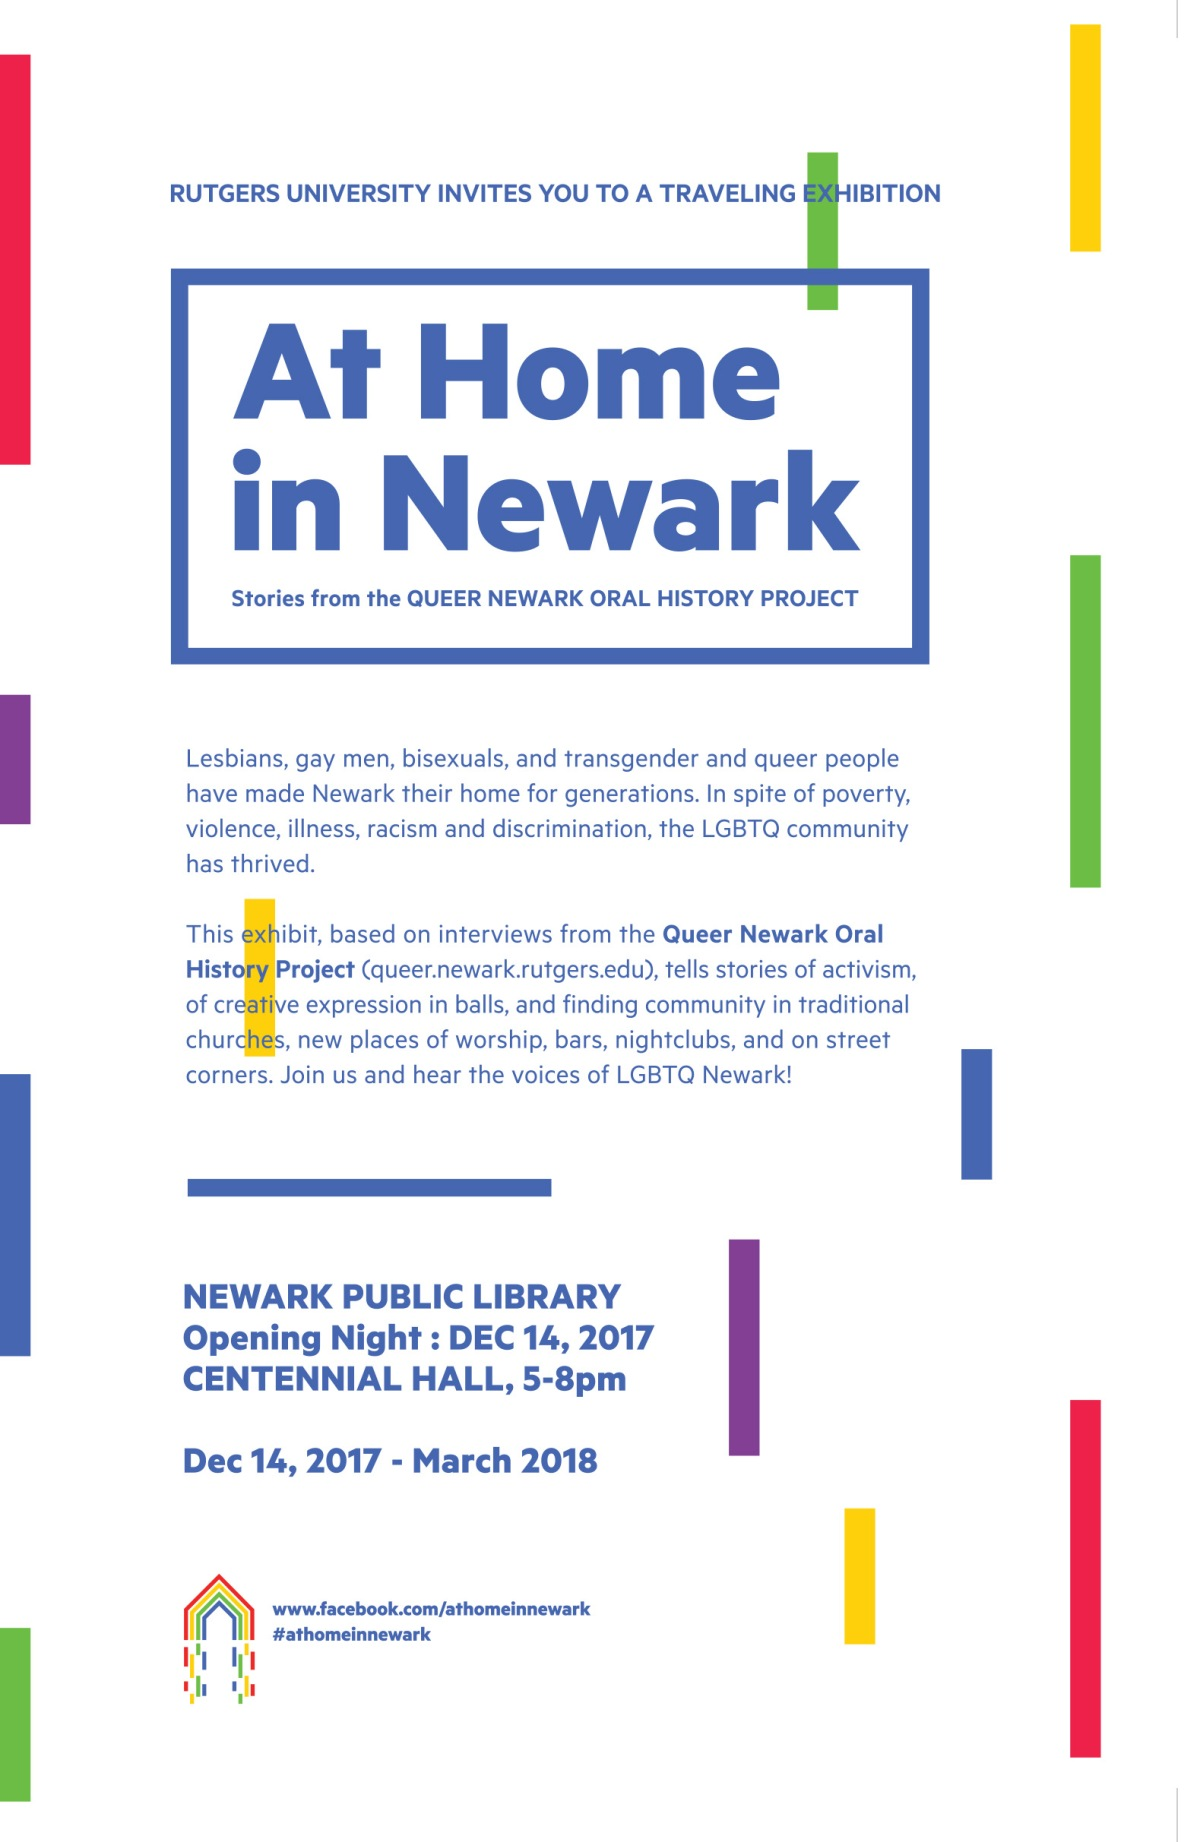 At Home in Newark: Stories from the Queer Newark Oral HistoryProject